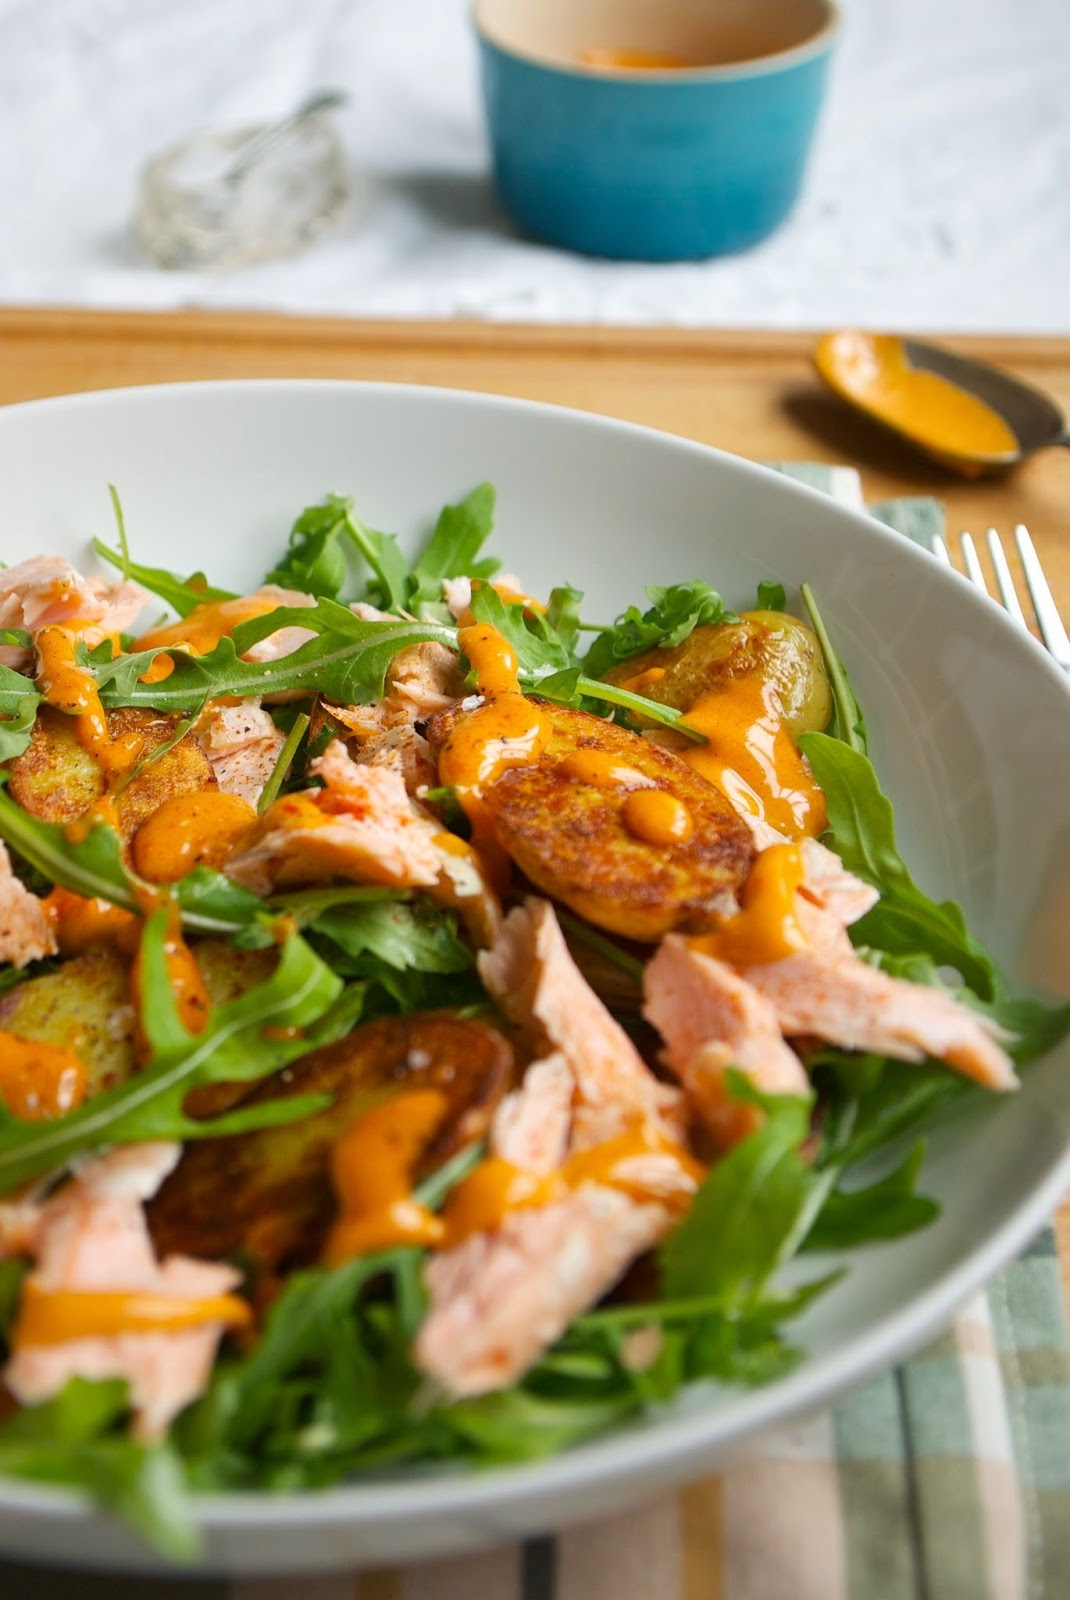 Hot smoked salmon and potato salad with paprika aioli